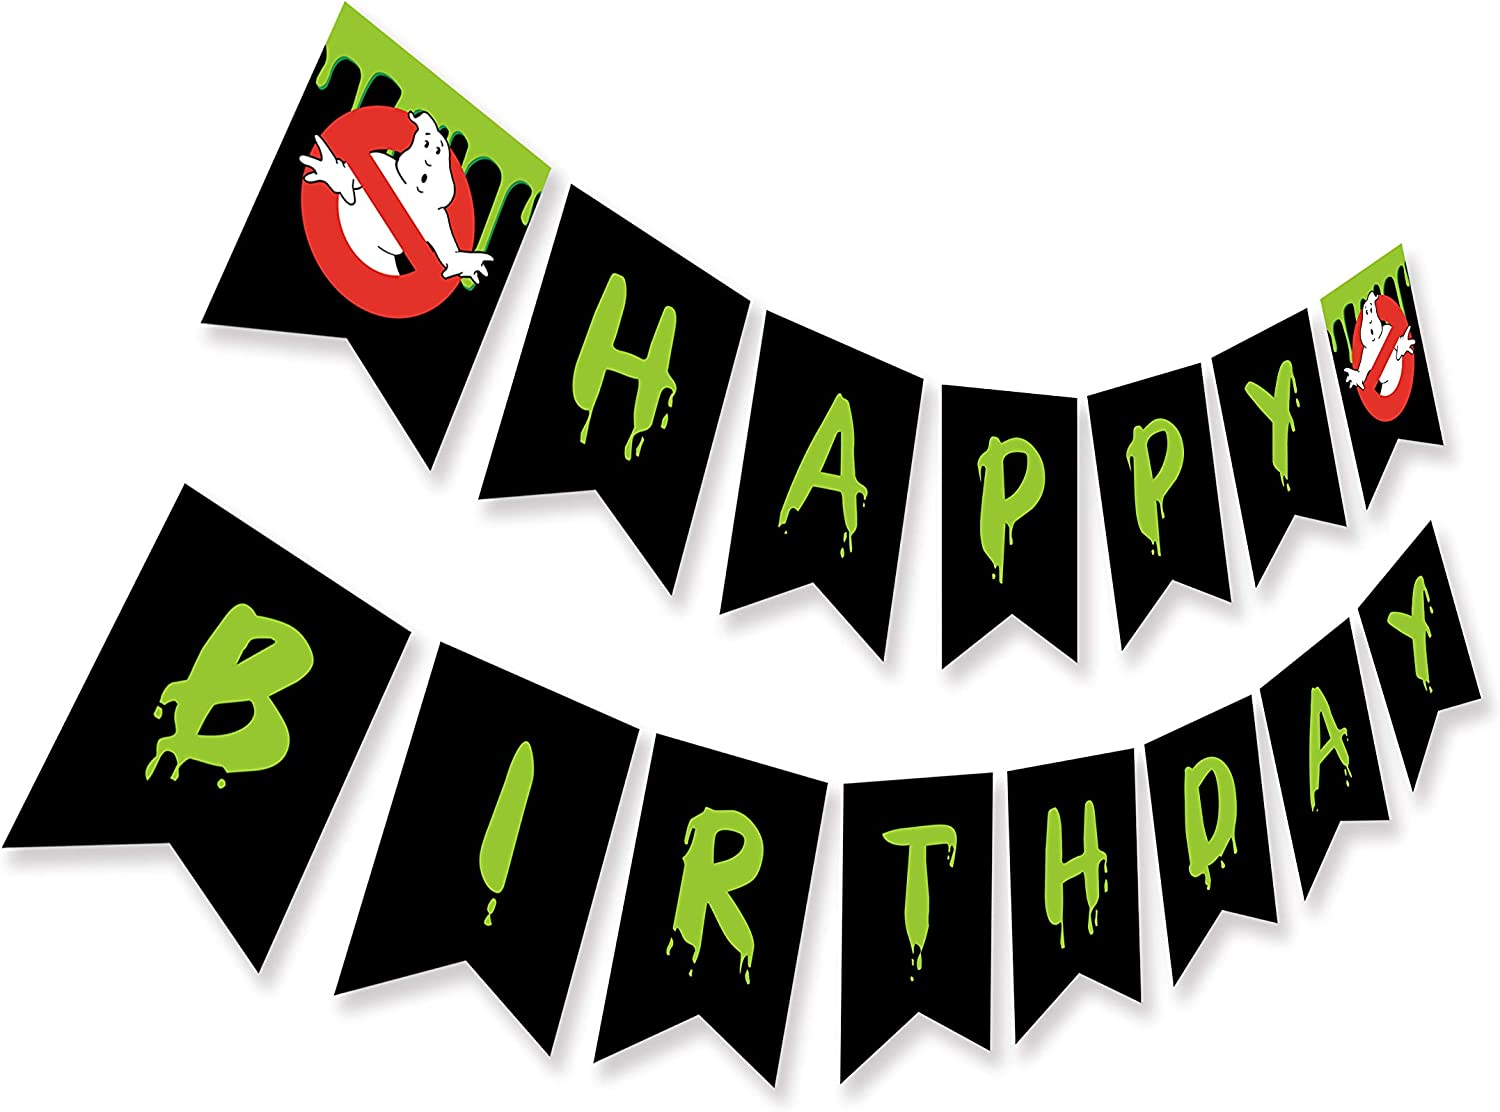 Ghost Busters Inspired Happy Birthday Banner, HorrorTheme Bday Party Sign, Ghostbusters Halloween Bunting Decoration